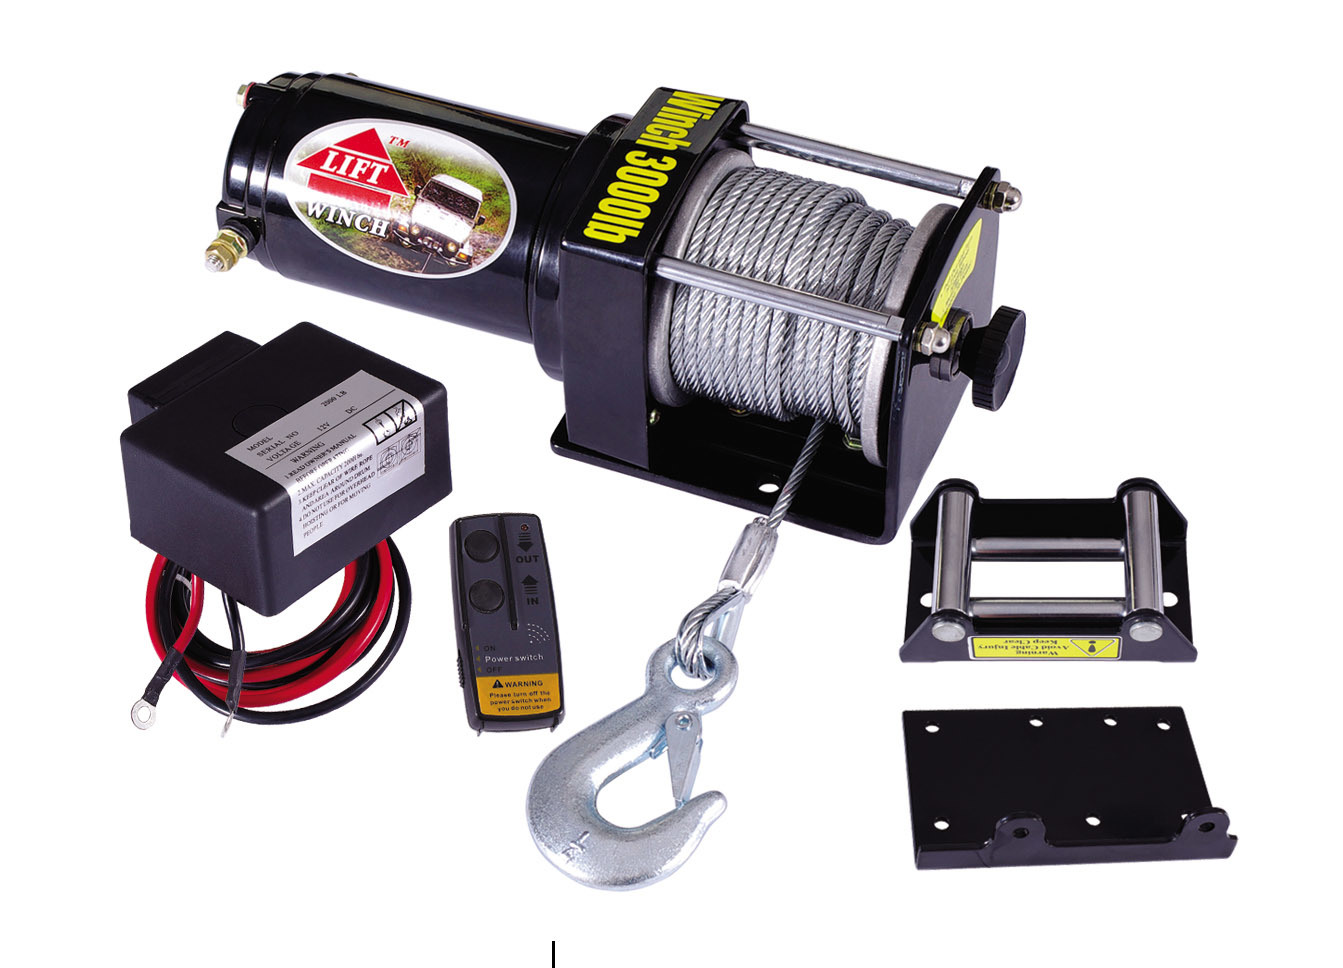 hight resolution of electric winch wiring diagram electric get free image warn atv winch wiring diagram warn atv winch wiring diagram